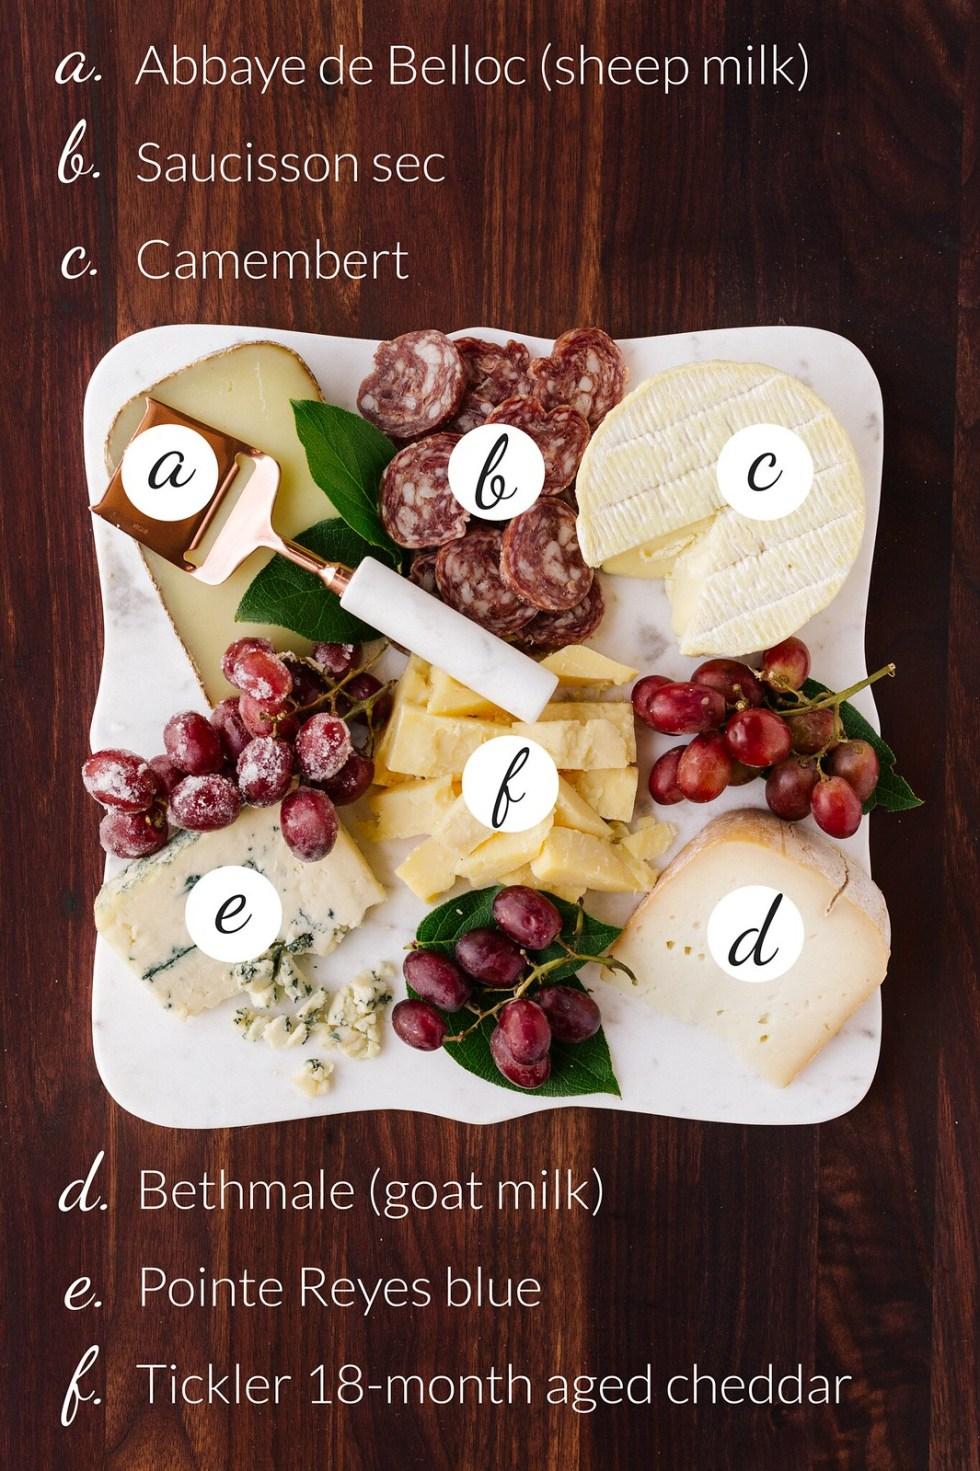 Cheese board tutorial #sponsored